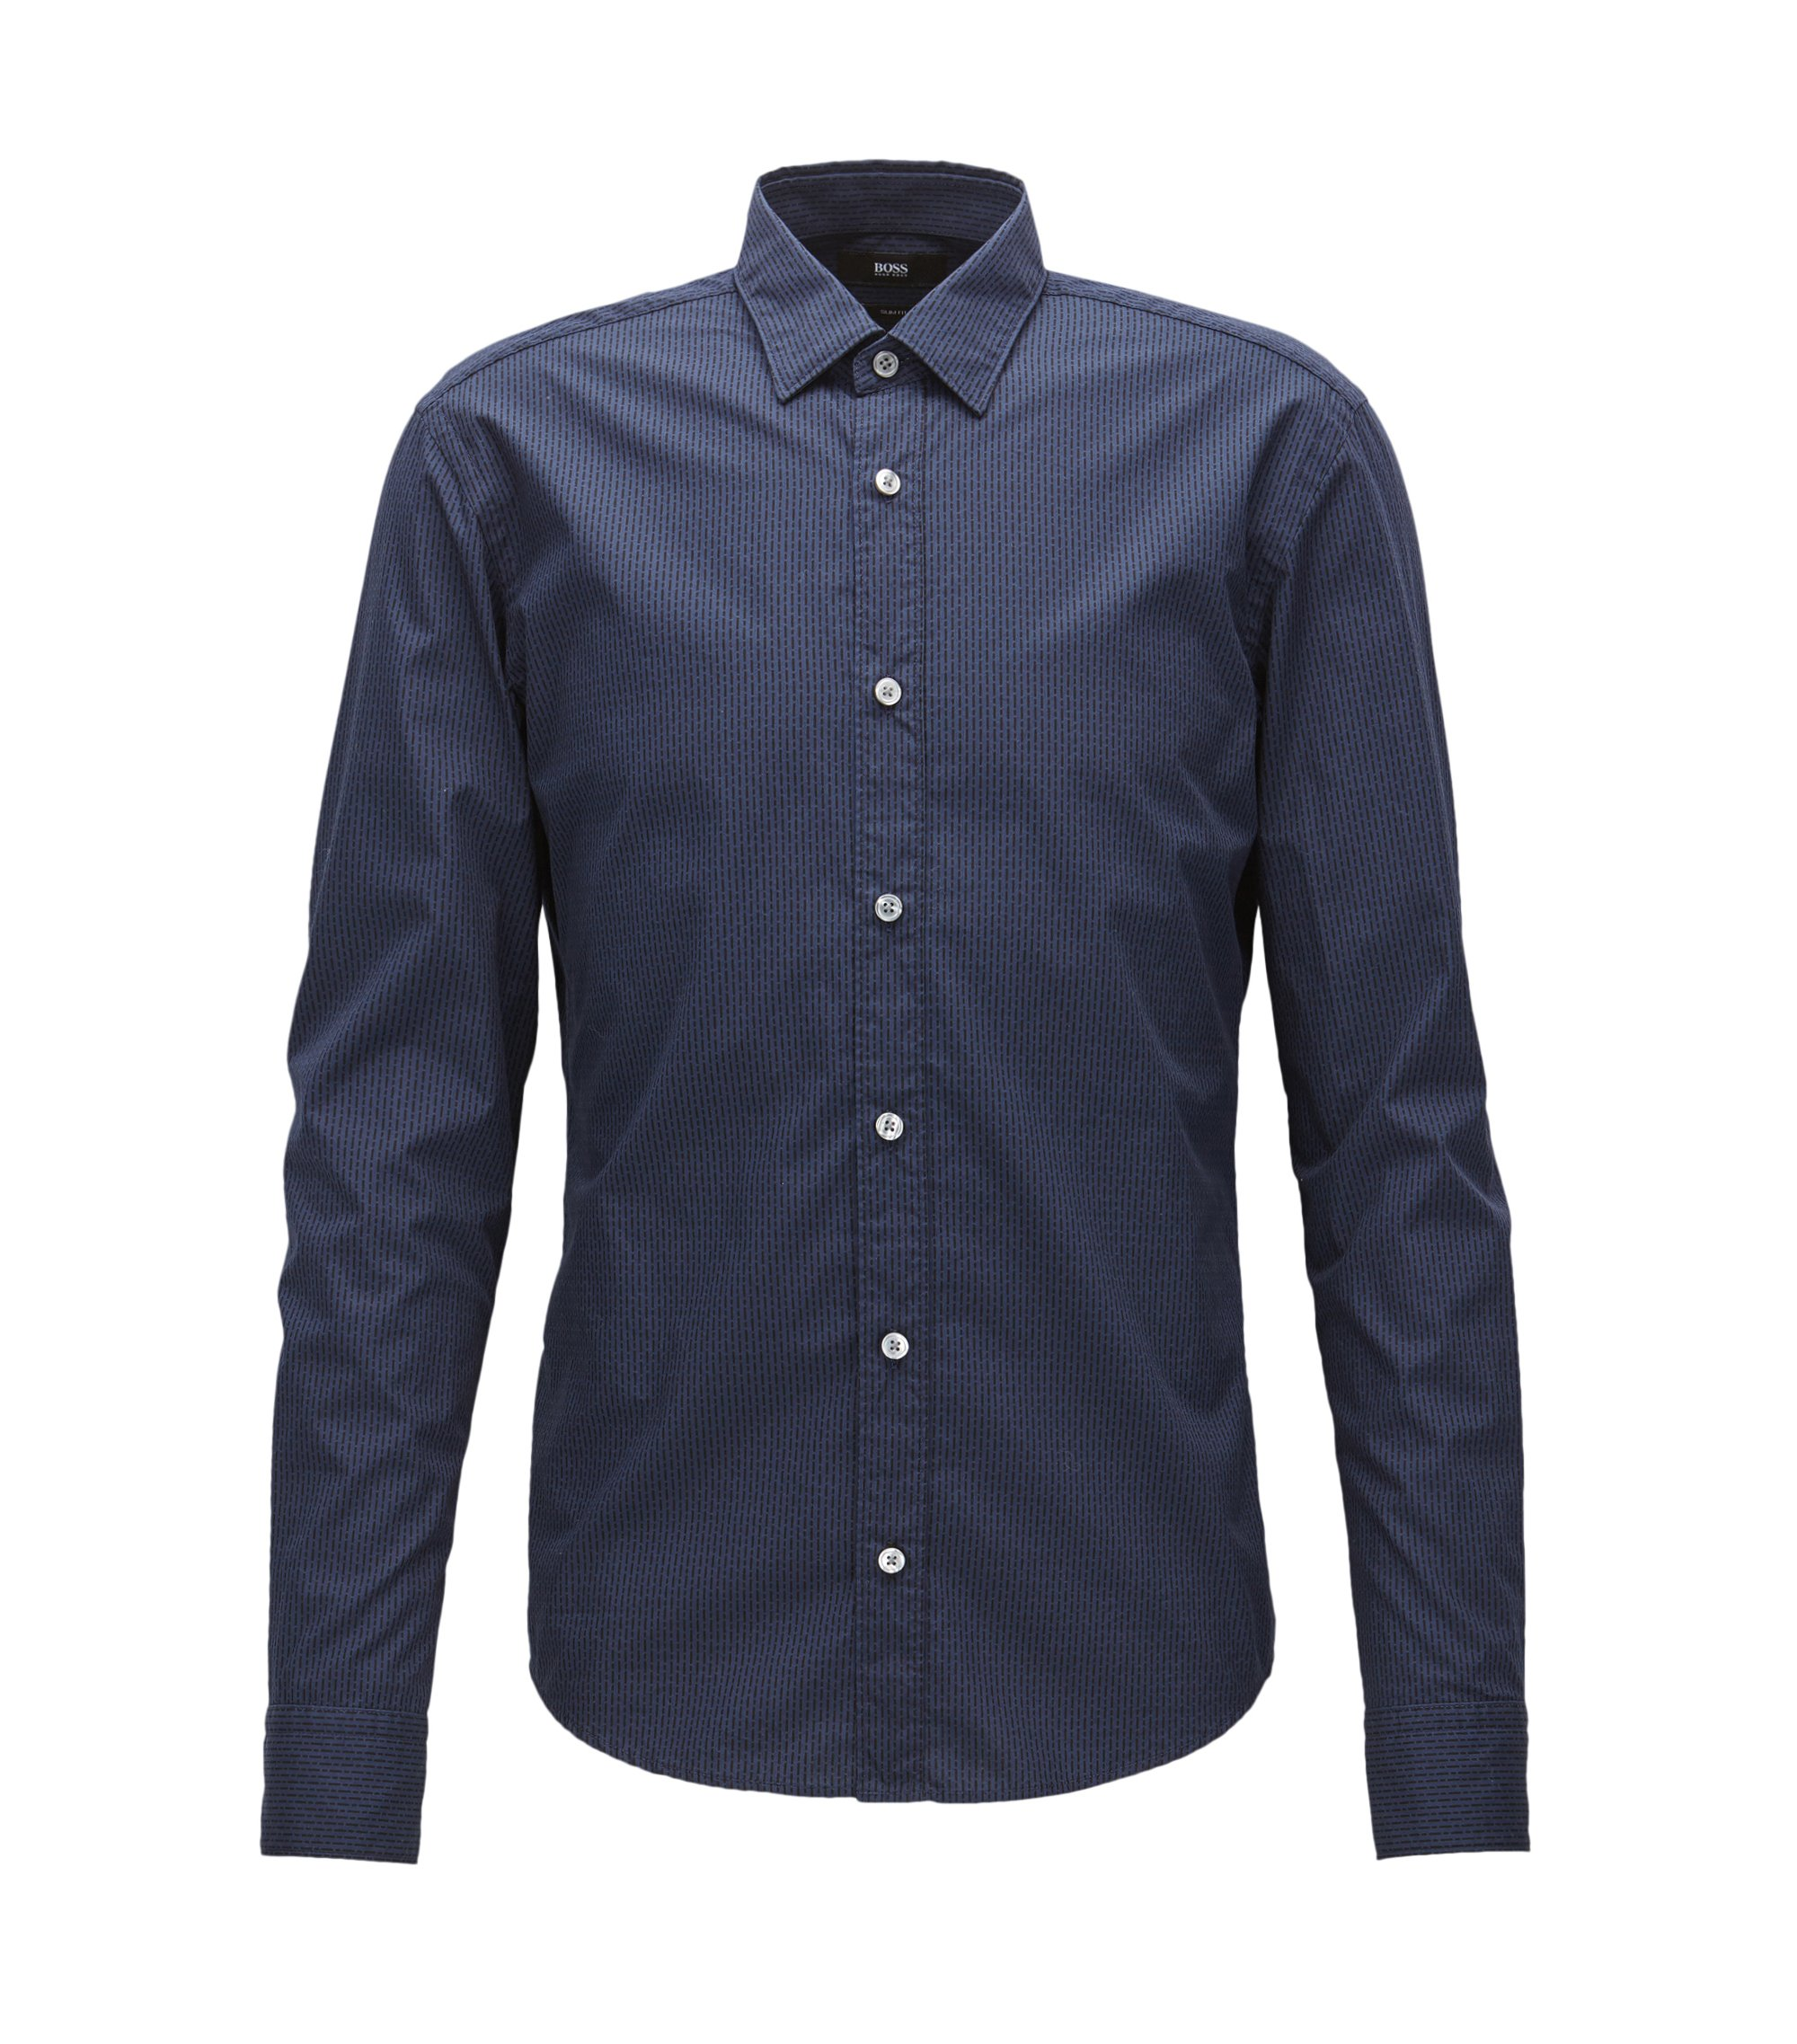 Patterned slim-fit cotton shirt for Mercedes-Benz Collection, Dark Blue